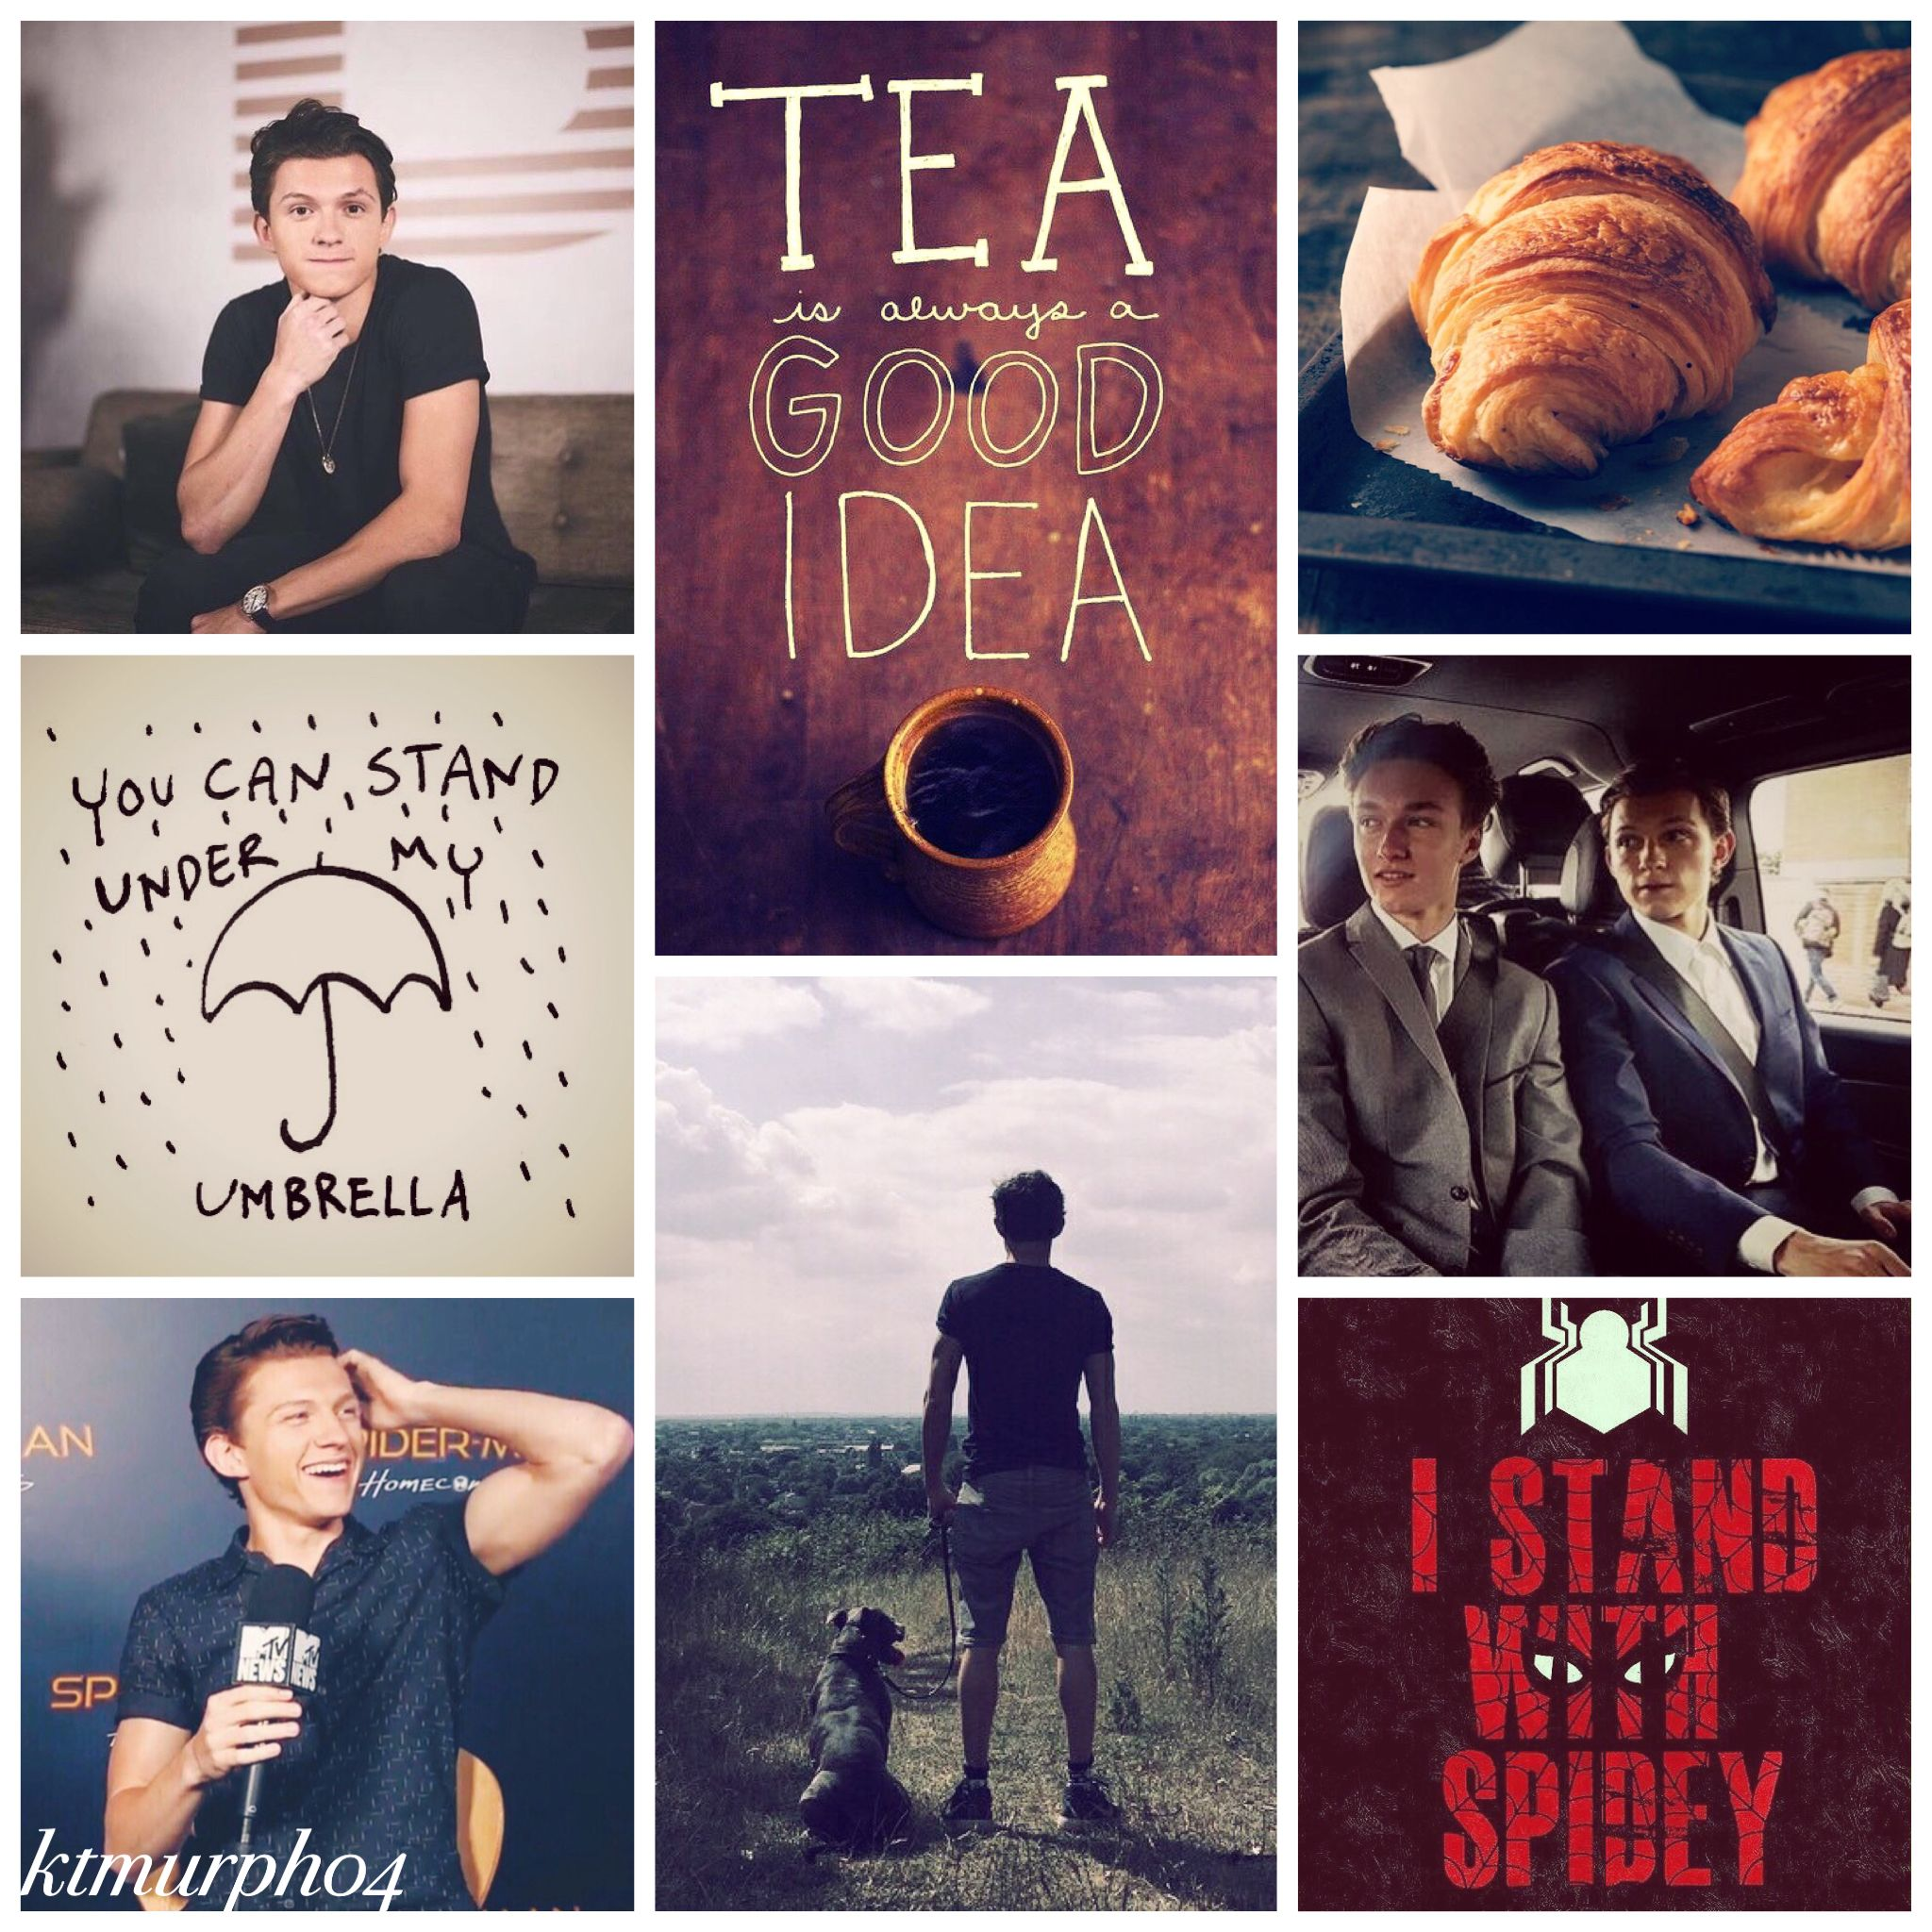 Tom holland aesthetic Que guapo, Mejor persona, Heroe